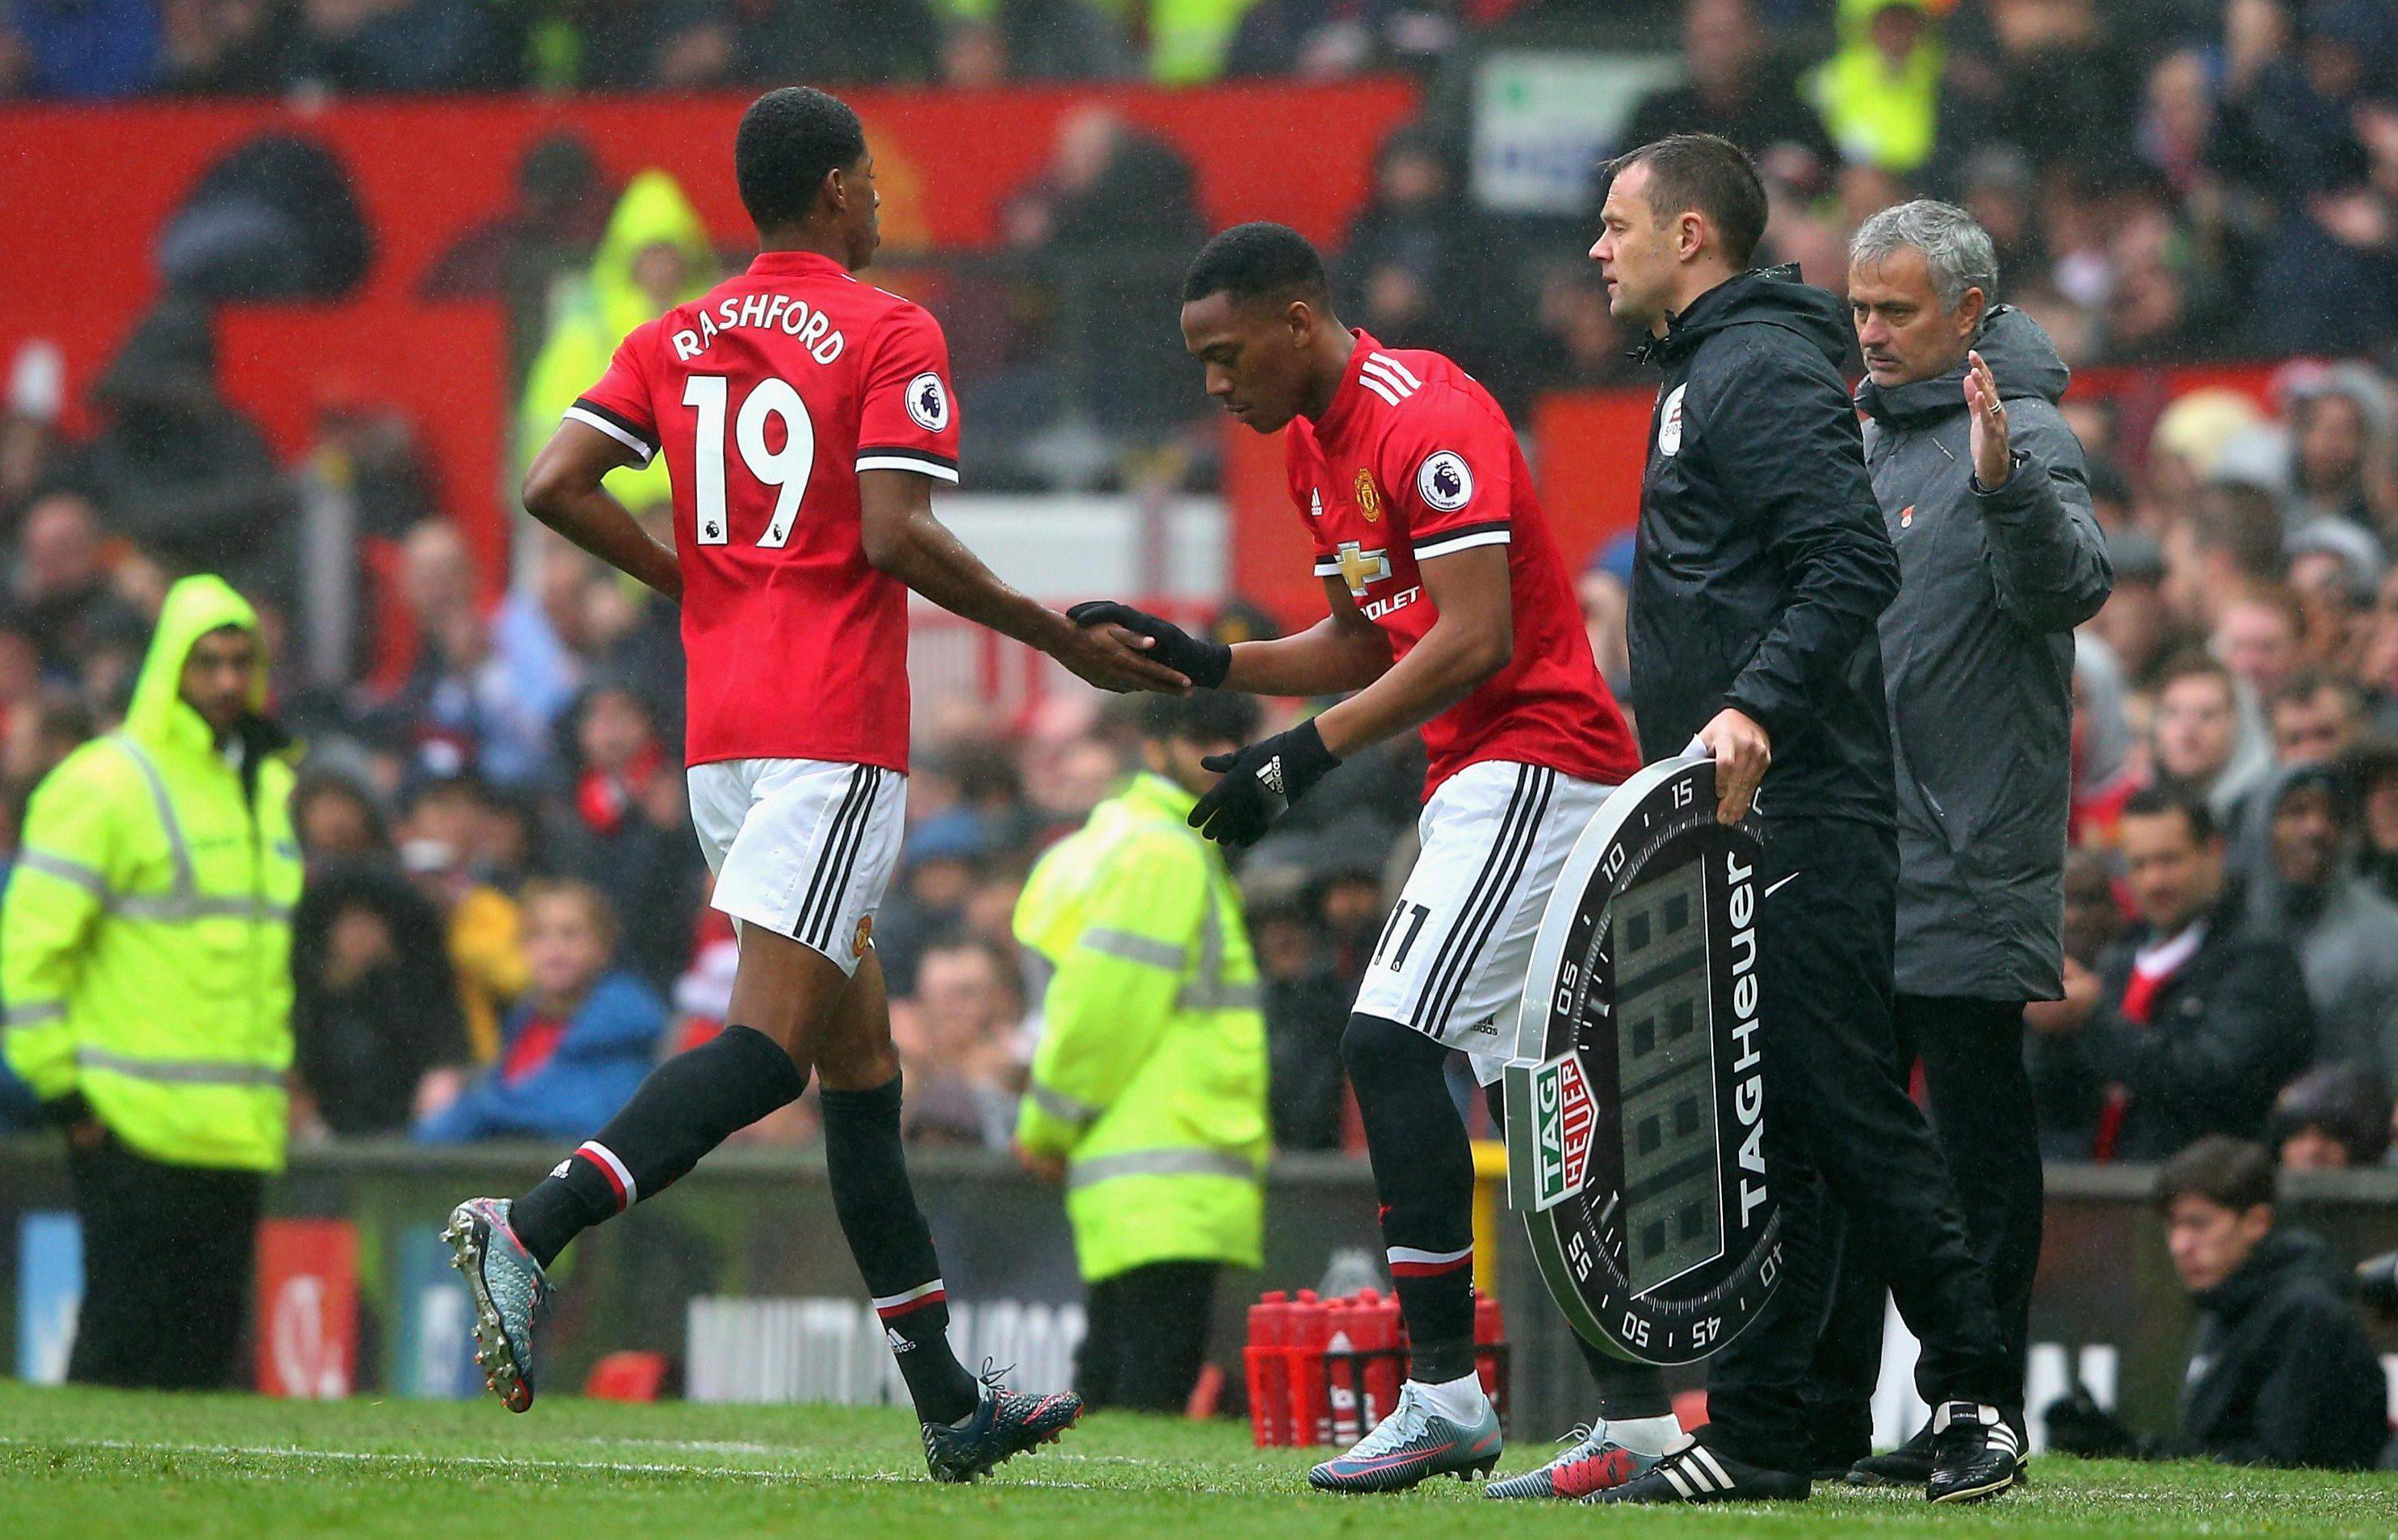 Supporters werent happy when Marcus Rashford was taken off for Anthony Martial